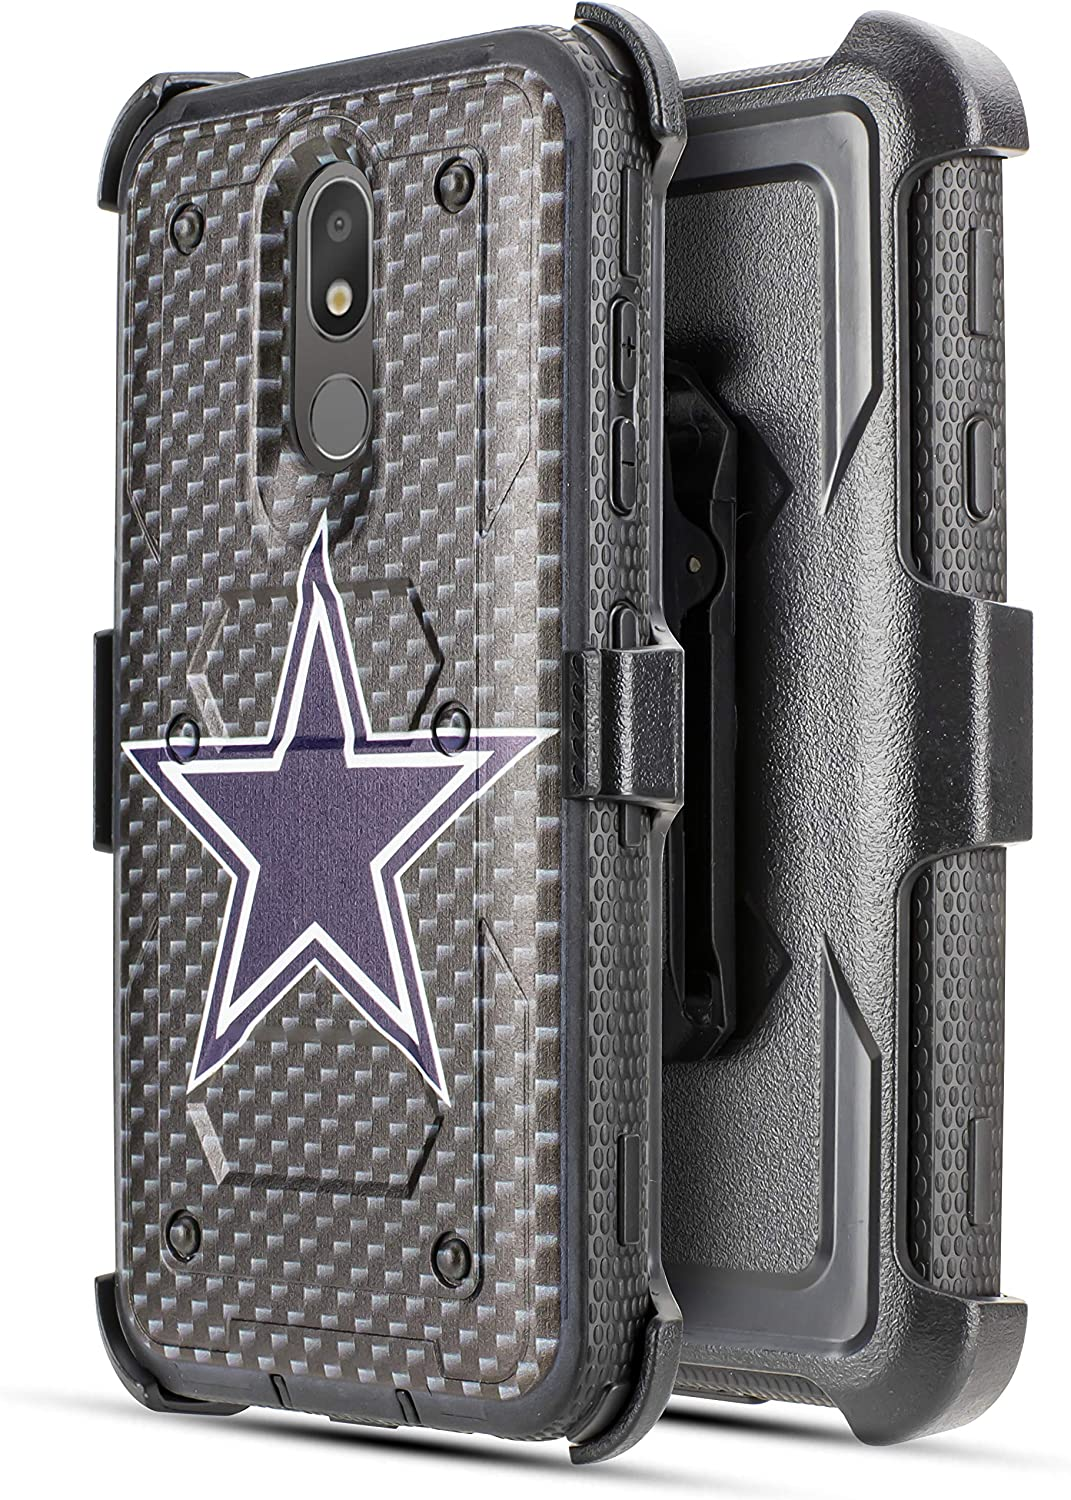 for LG Aristo 4+ Plus/Prime 2/ Escape Plus/LG K30 (2019)/Arena 2/ Journey LTE Full Body Armor Rugged Holster Hybrid Tough Case 360 Belt Clip Kickstand & Built in Screen Protector (Cowboy)